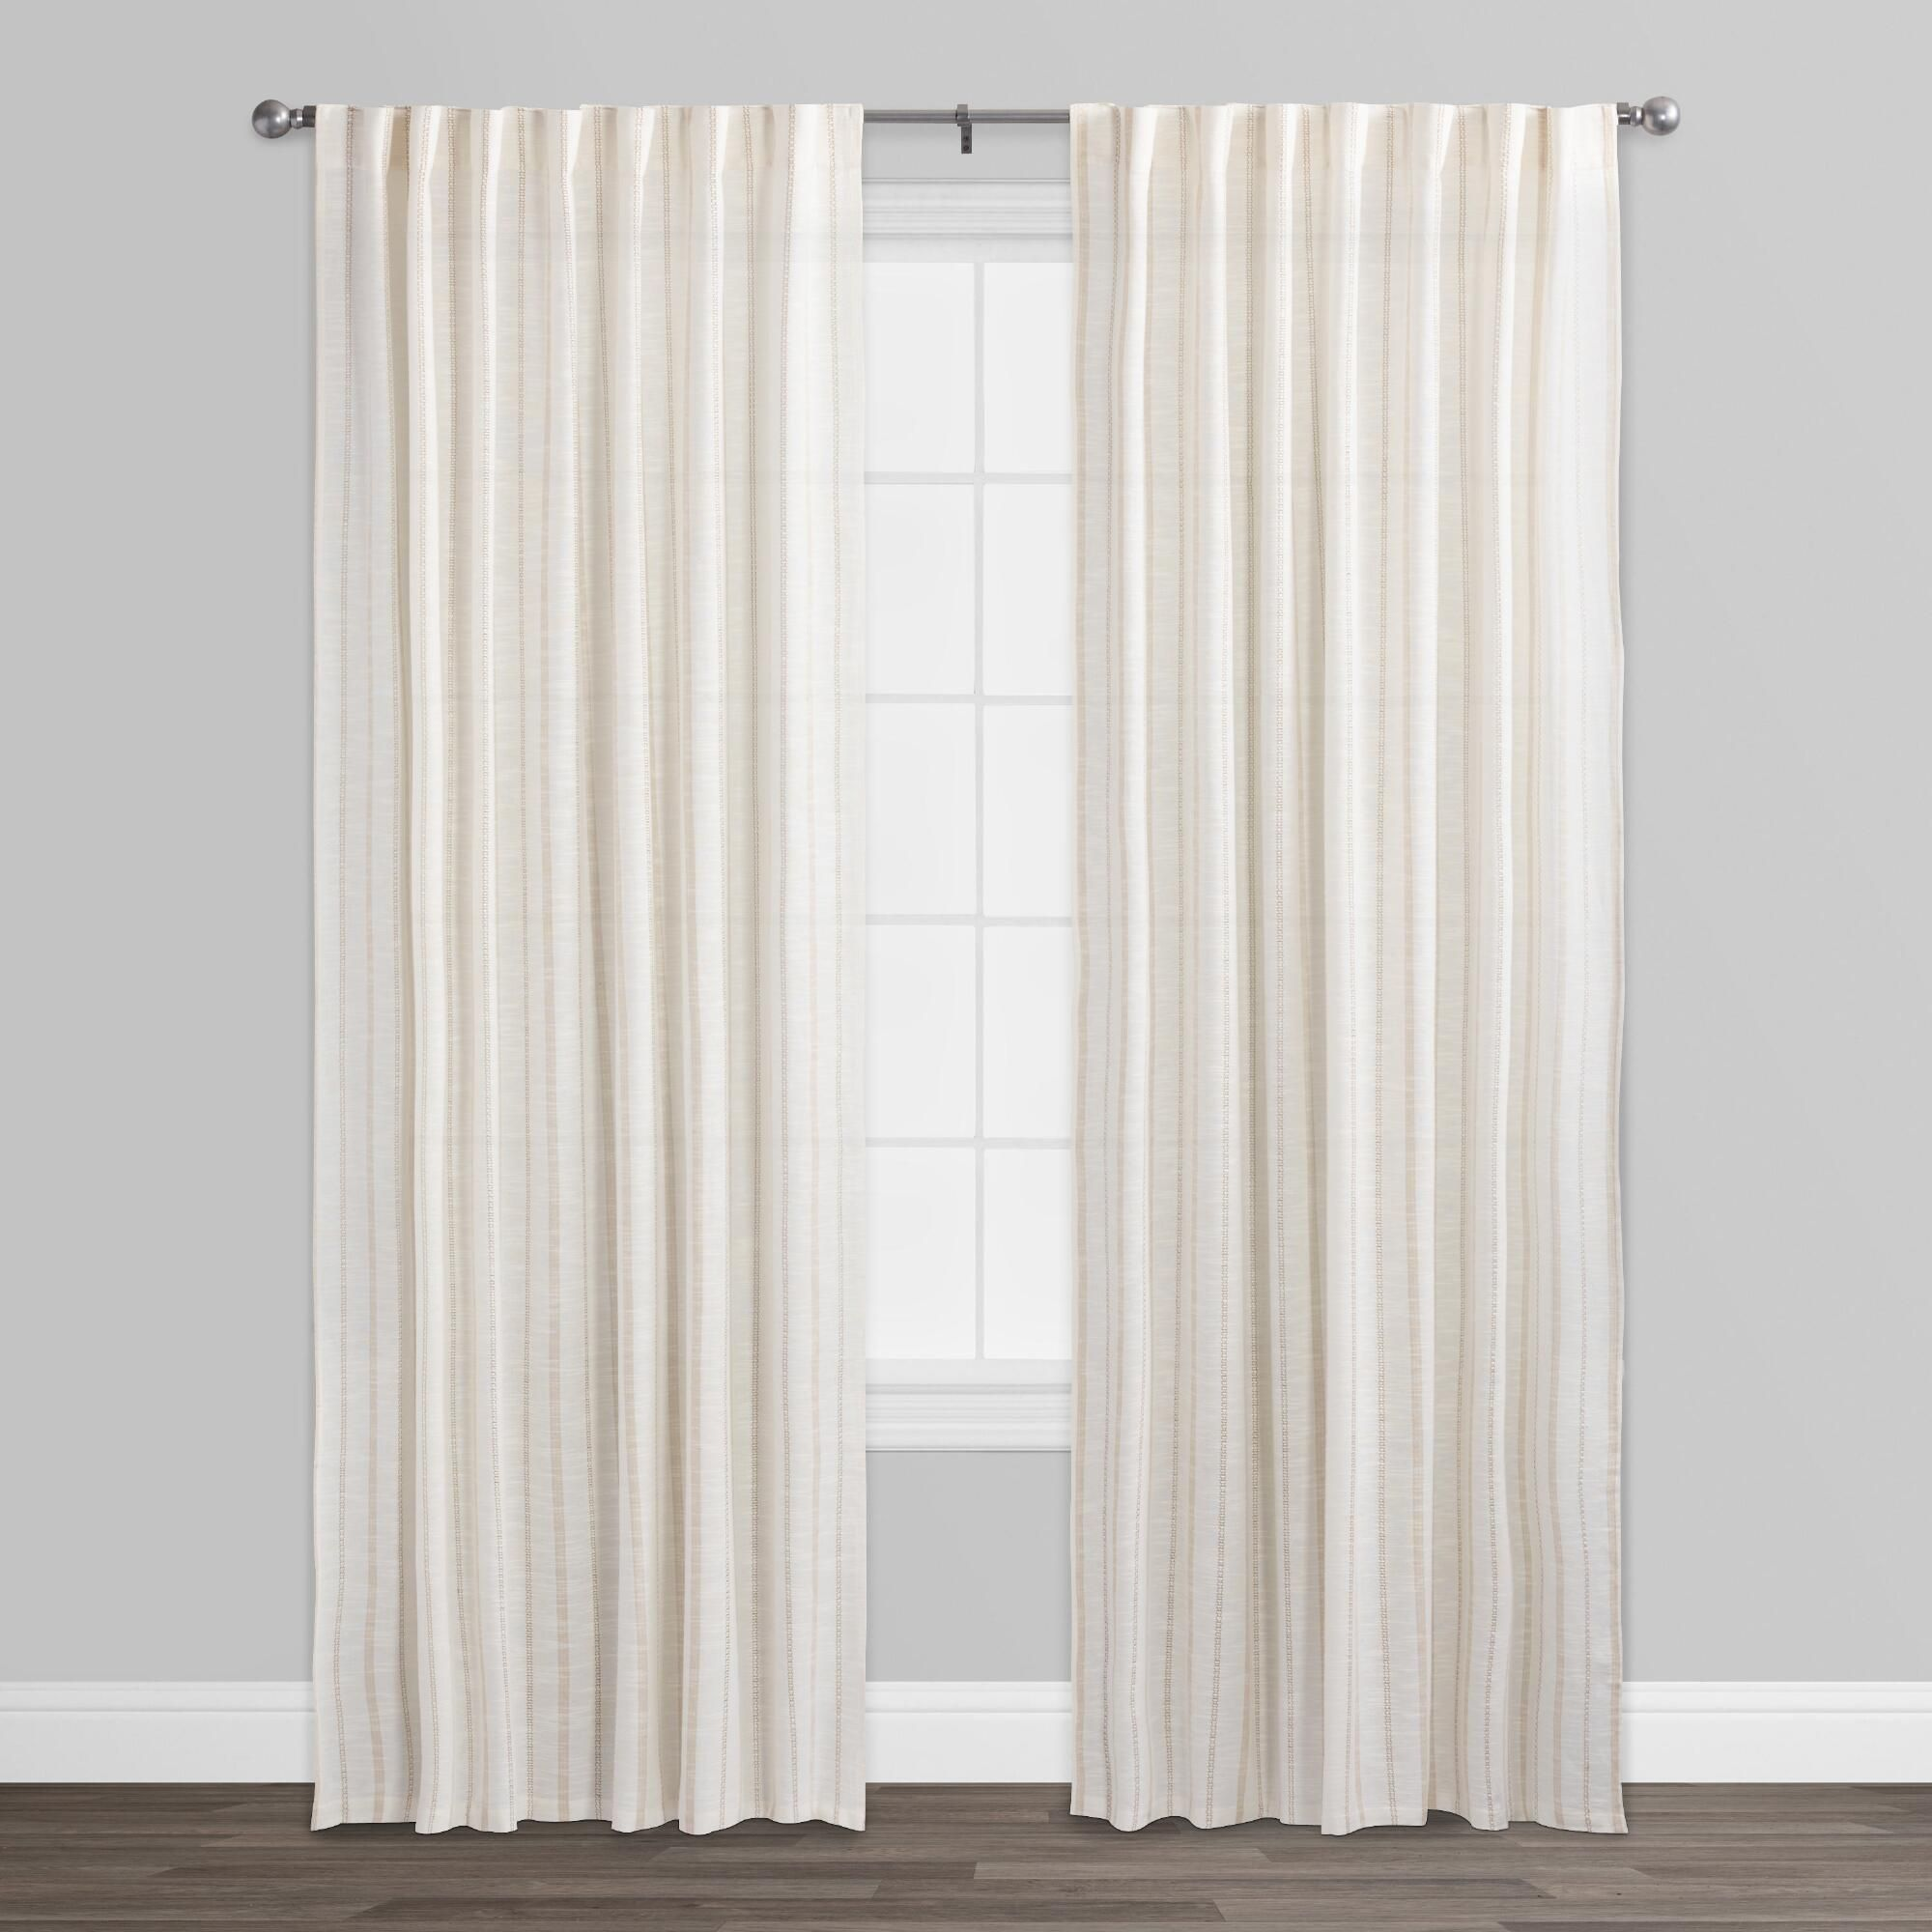 the dobby striping in our cotton slub curtains weaves ivory under the dobby striping in our cotton slub curtains weaves ivory under a tan vertical design